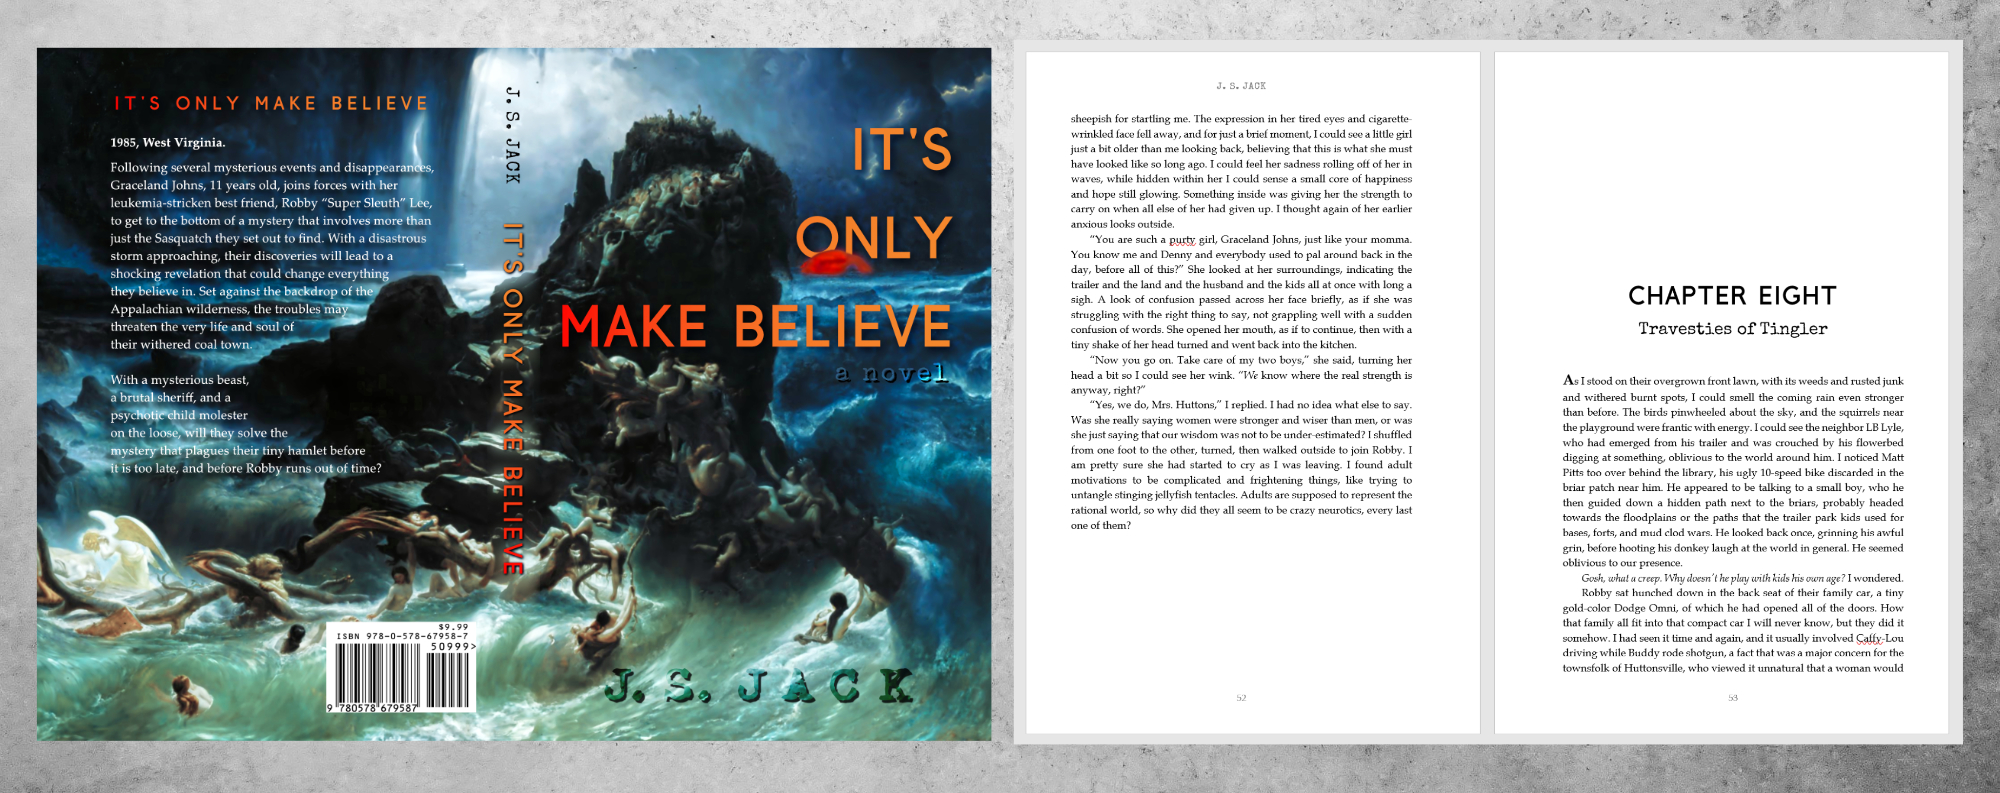 Example image of book It's Only Make Believe by J. S. Jack